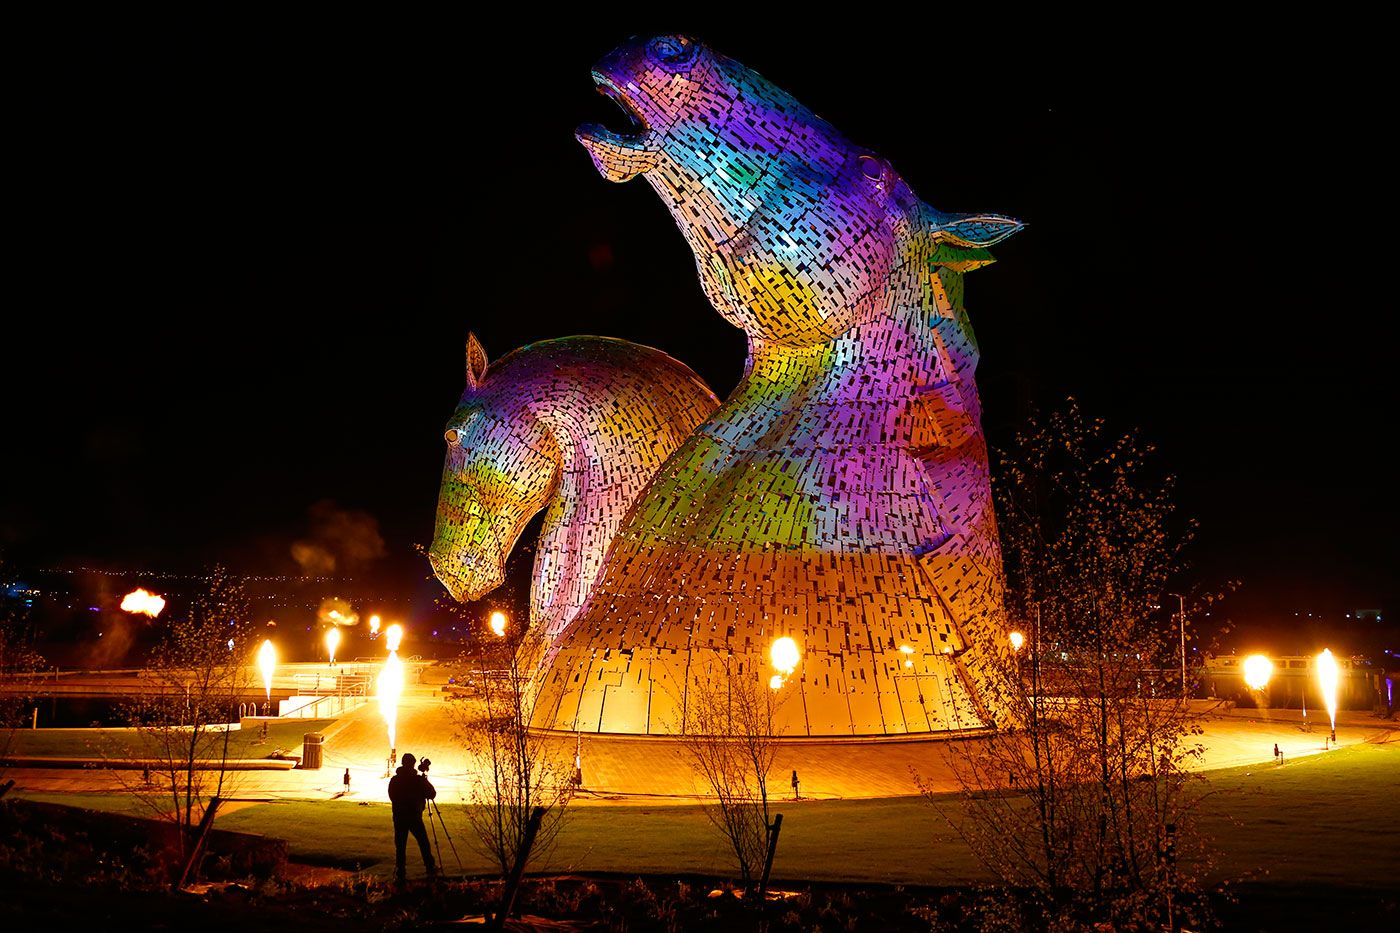 Gorgeous Photos Of The Kelpies Art Installation In Scotland I - Amazing horse head sculpture lights scottish skyline